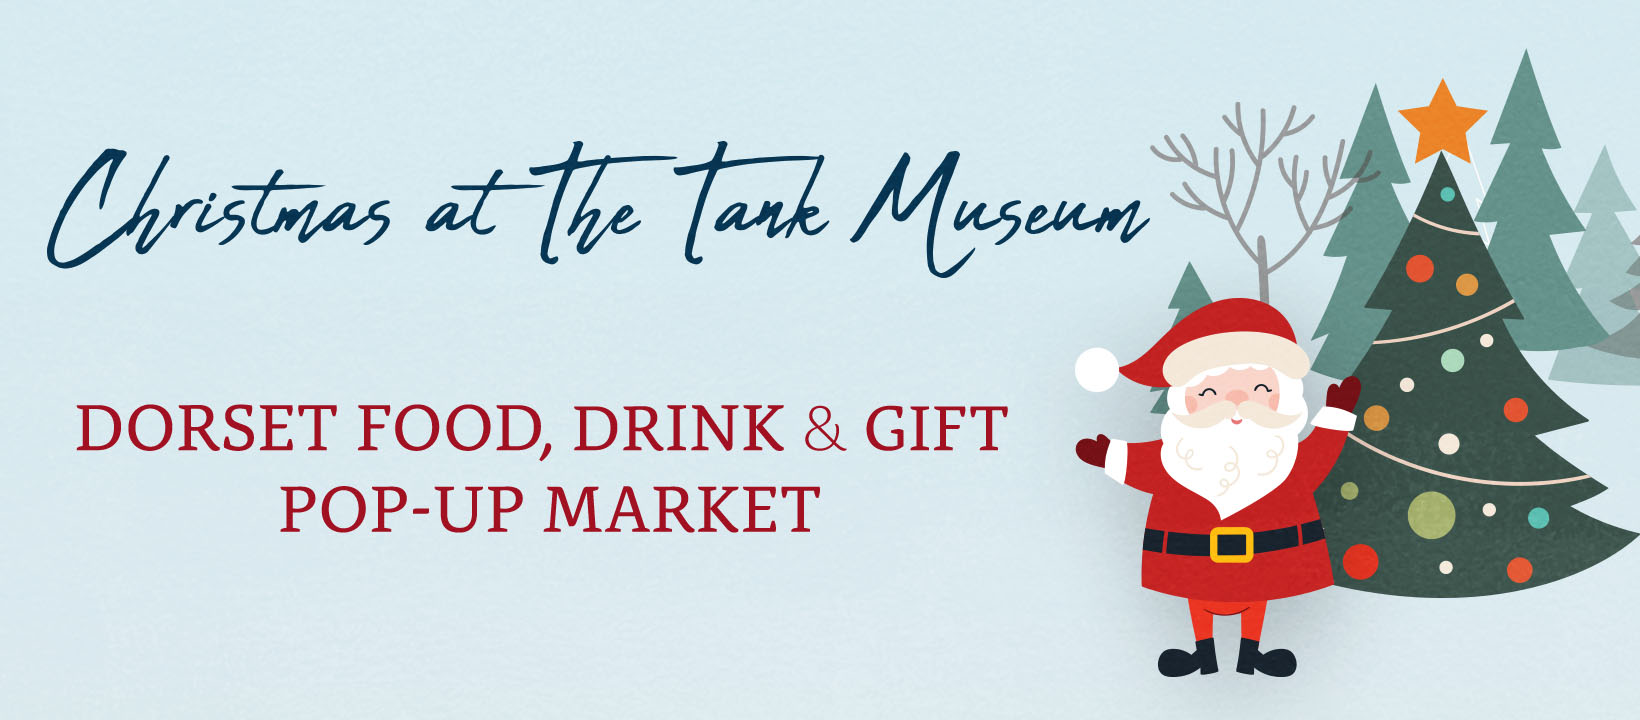 Christmas at The Tank Museum